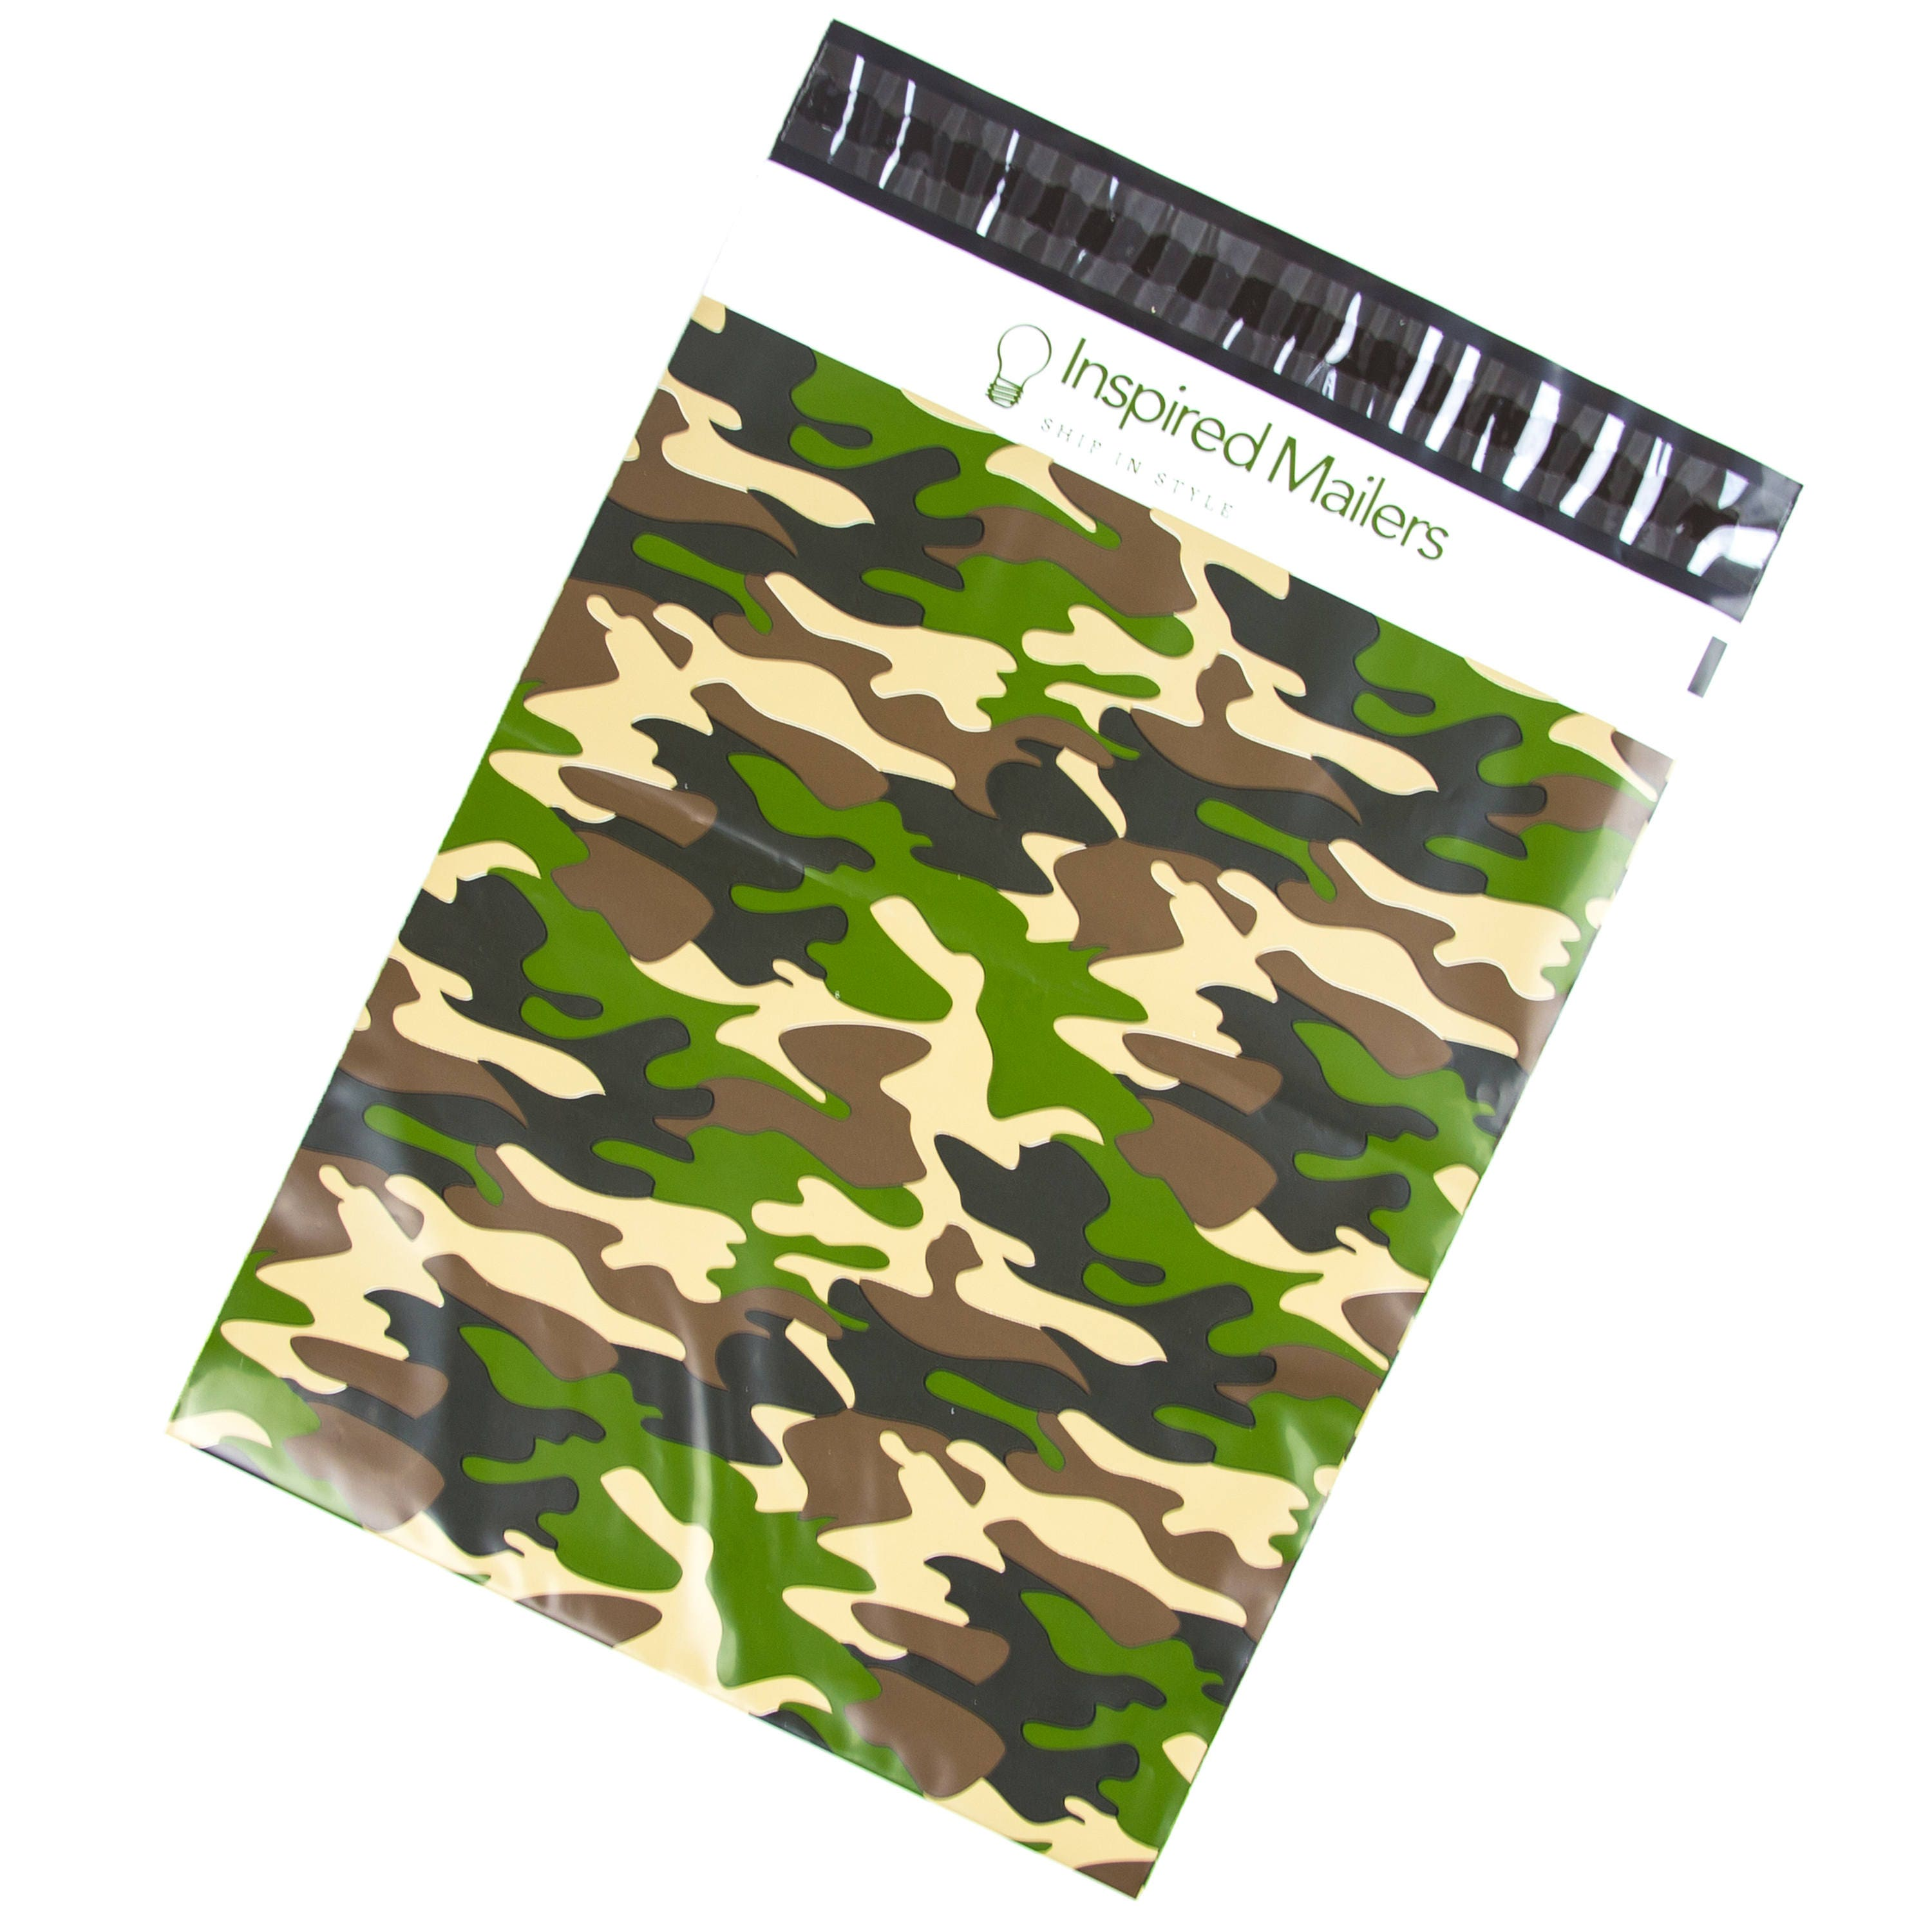 Tribal Arrows Printed Poly Mailers Pack of 100 FREE SHIPPING